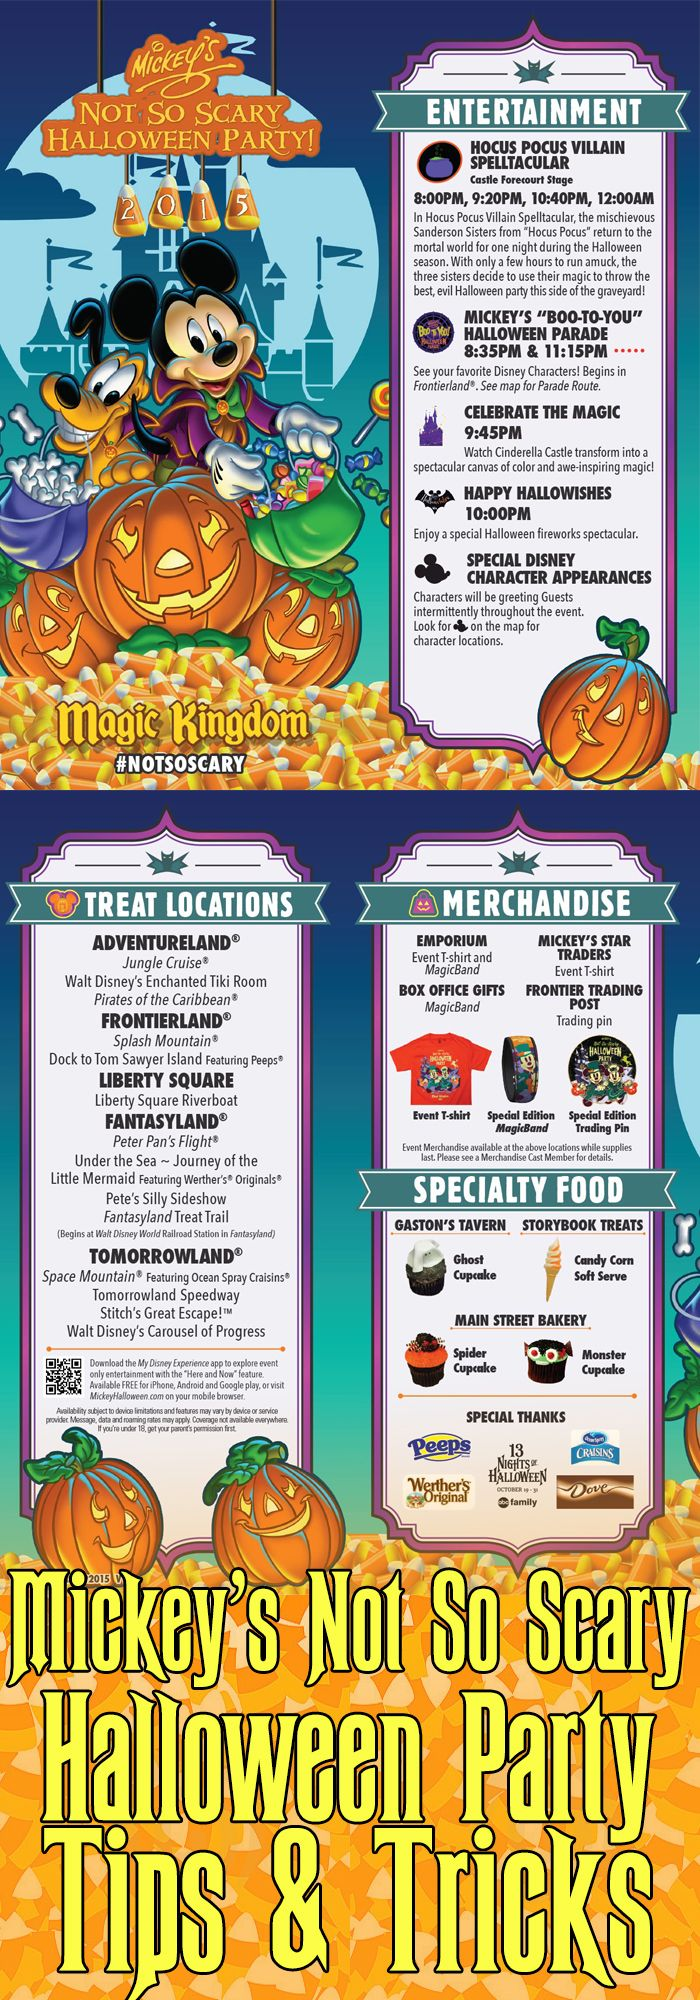 Mickey's Not So Scary Halloween Party Calendar 2017 | nancy ...